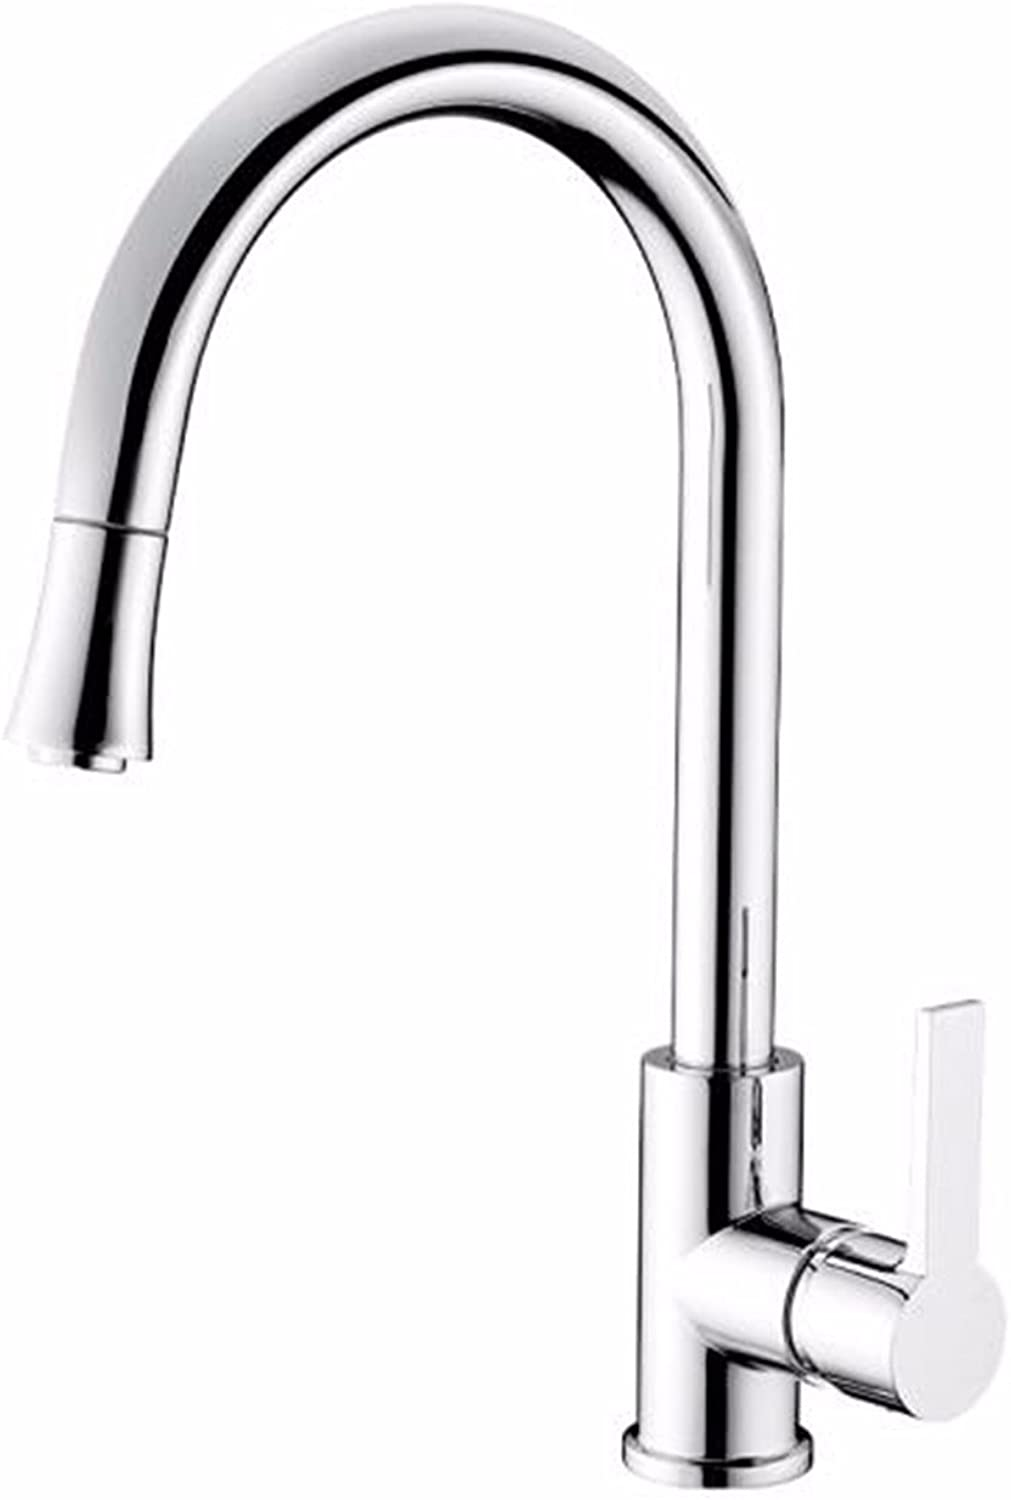 Hlluya Professional Sink Mixer Tap Kitchen Faucet The copper hot and cold dish washing basin pull-down faucet swivel Faucet